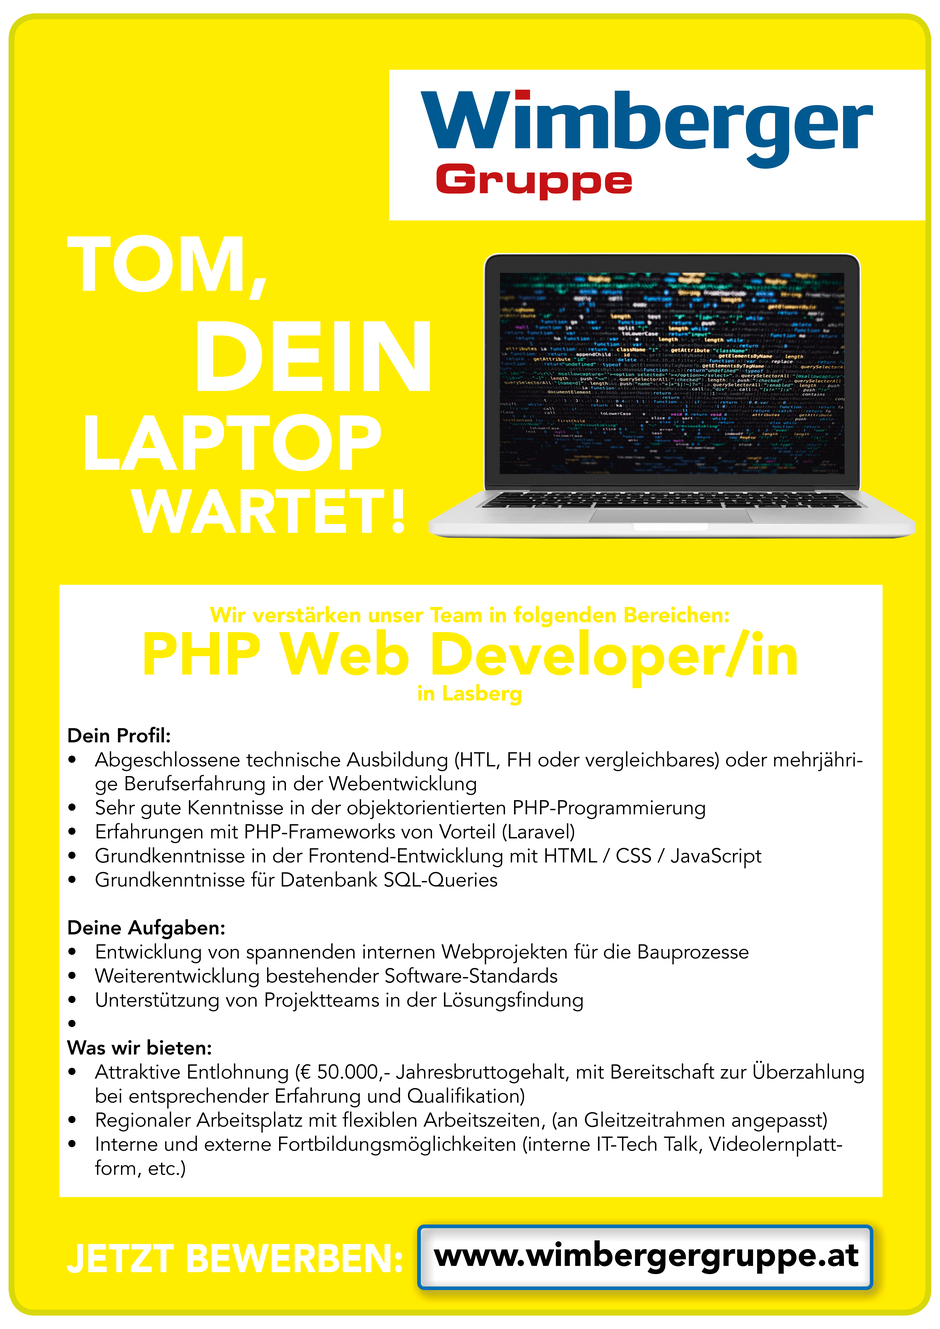 Software Developer Jobs - PHP Web Developer - Wimberger Gruppe - Lasberg - Oberösterreich - 1